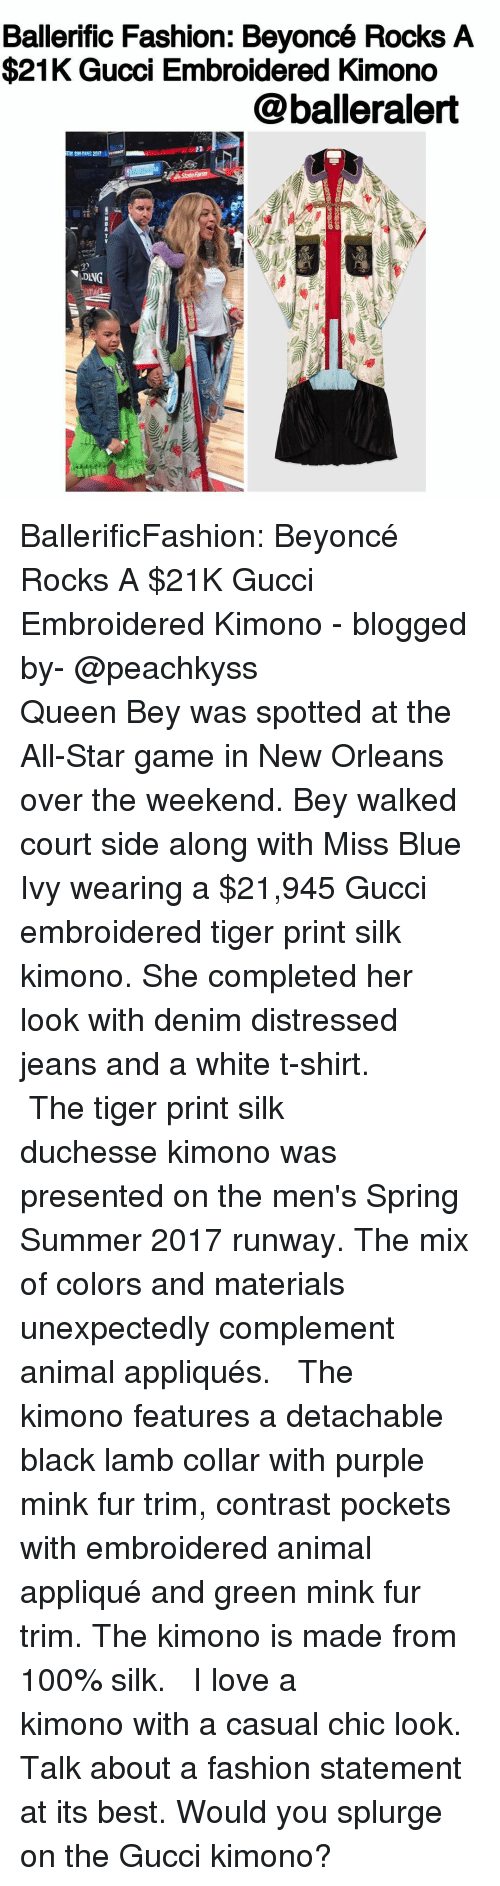 Unexpectable: Ballerific Fashion: Beyoncé Rocks A  $21K Gucci Embroidered Kimono  @balleralert  ING BallerificFashion: Beyoncé Rocks A $21K Gucci Embroidered Kimono - blogged by- @peachkyss ⠀⠀⠀⠀⠀⠀⠀ ⠀⠀⠀⠀⠀⠀⠀ Queen Bey was spotted at the All-Star game in New Orleans over the weekend. Bey walked court side along with Miss Blue Ivy wearing a $21,945 Gucci embroidered tiger print silk kimono. She completed her look with denim distressed jeans and a white t-shirt. ⠀⠀⠀⠀⠀⠀⠀ ⠀⠀⠀⠀⠀⠀⠀ The tiger print silk duchesse kimono was presented on the men's Spring Summer 2017 runway. The mix of colors and materials unexpectedly complement animal appliqués. ⠀⠀⠀⠀⠀⠀⠀ ⠀⠀⠀⠀⠀⠀⠀ The kimono features a detachable black lamb collar with purple mink fur trim, contrast pockets with embroidered animal appliqué and green mink fur trim. The kimono is made from 100% silk. ⠀⠀⠀⠀⠀⠀⠀ ⠀⠀⠀⠀⠀⠀⠀ I love a kimono with a casual chic look. Talk about a fashion statement at its best. Would you splurge on the Gucci kimono?